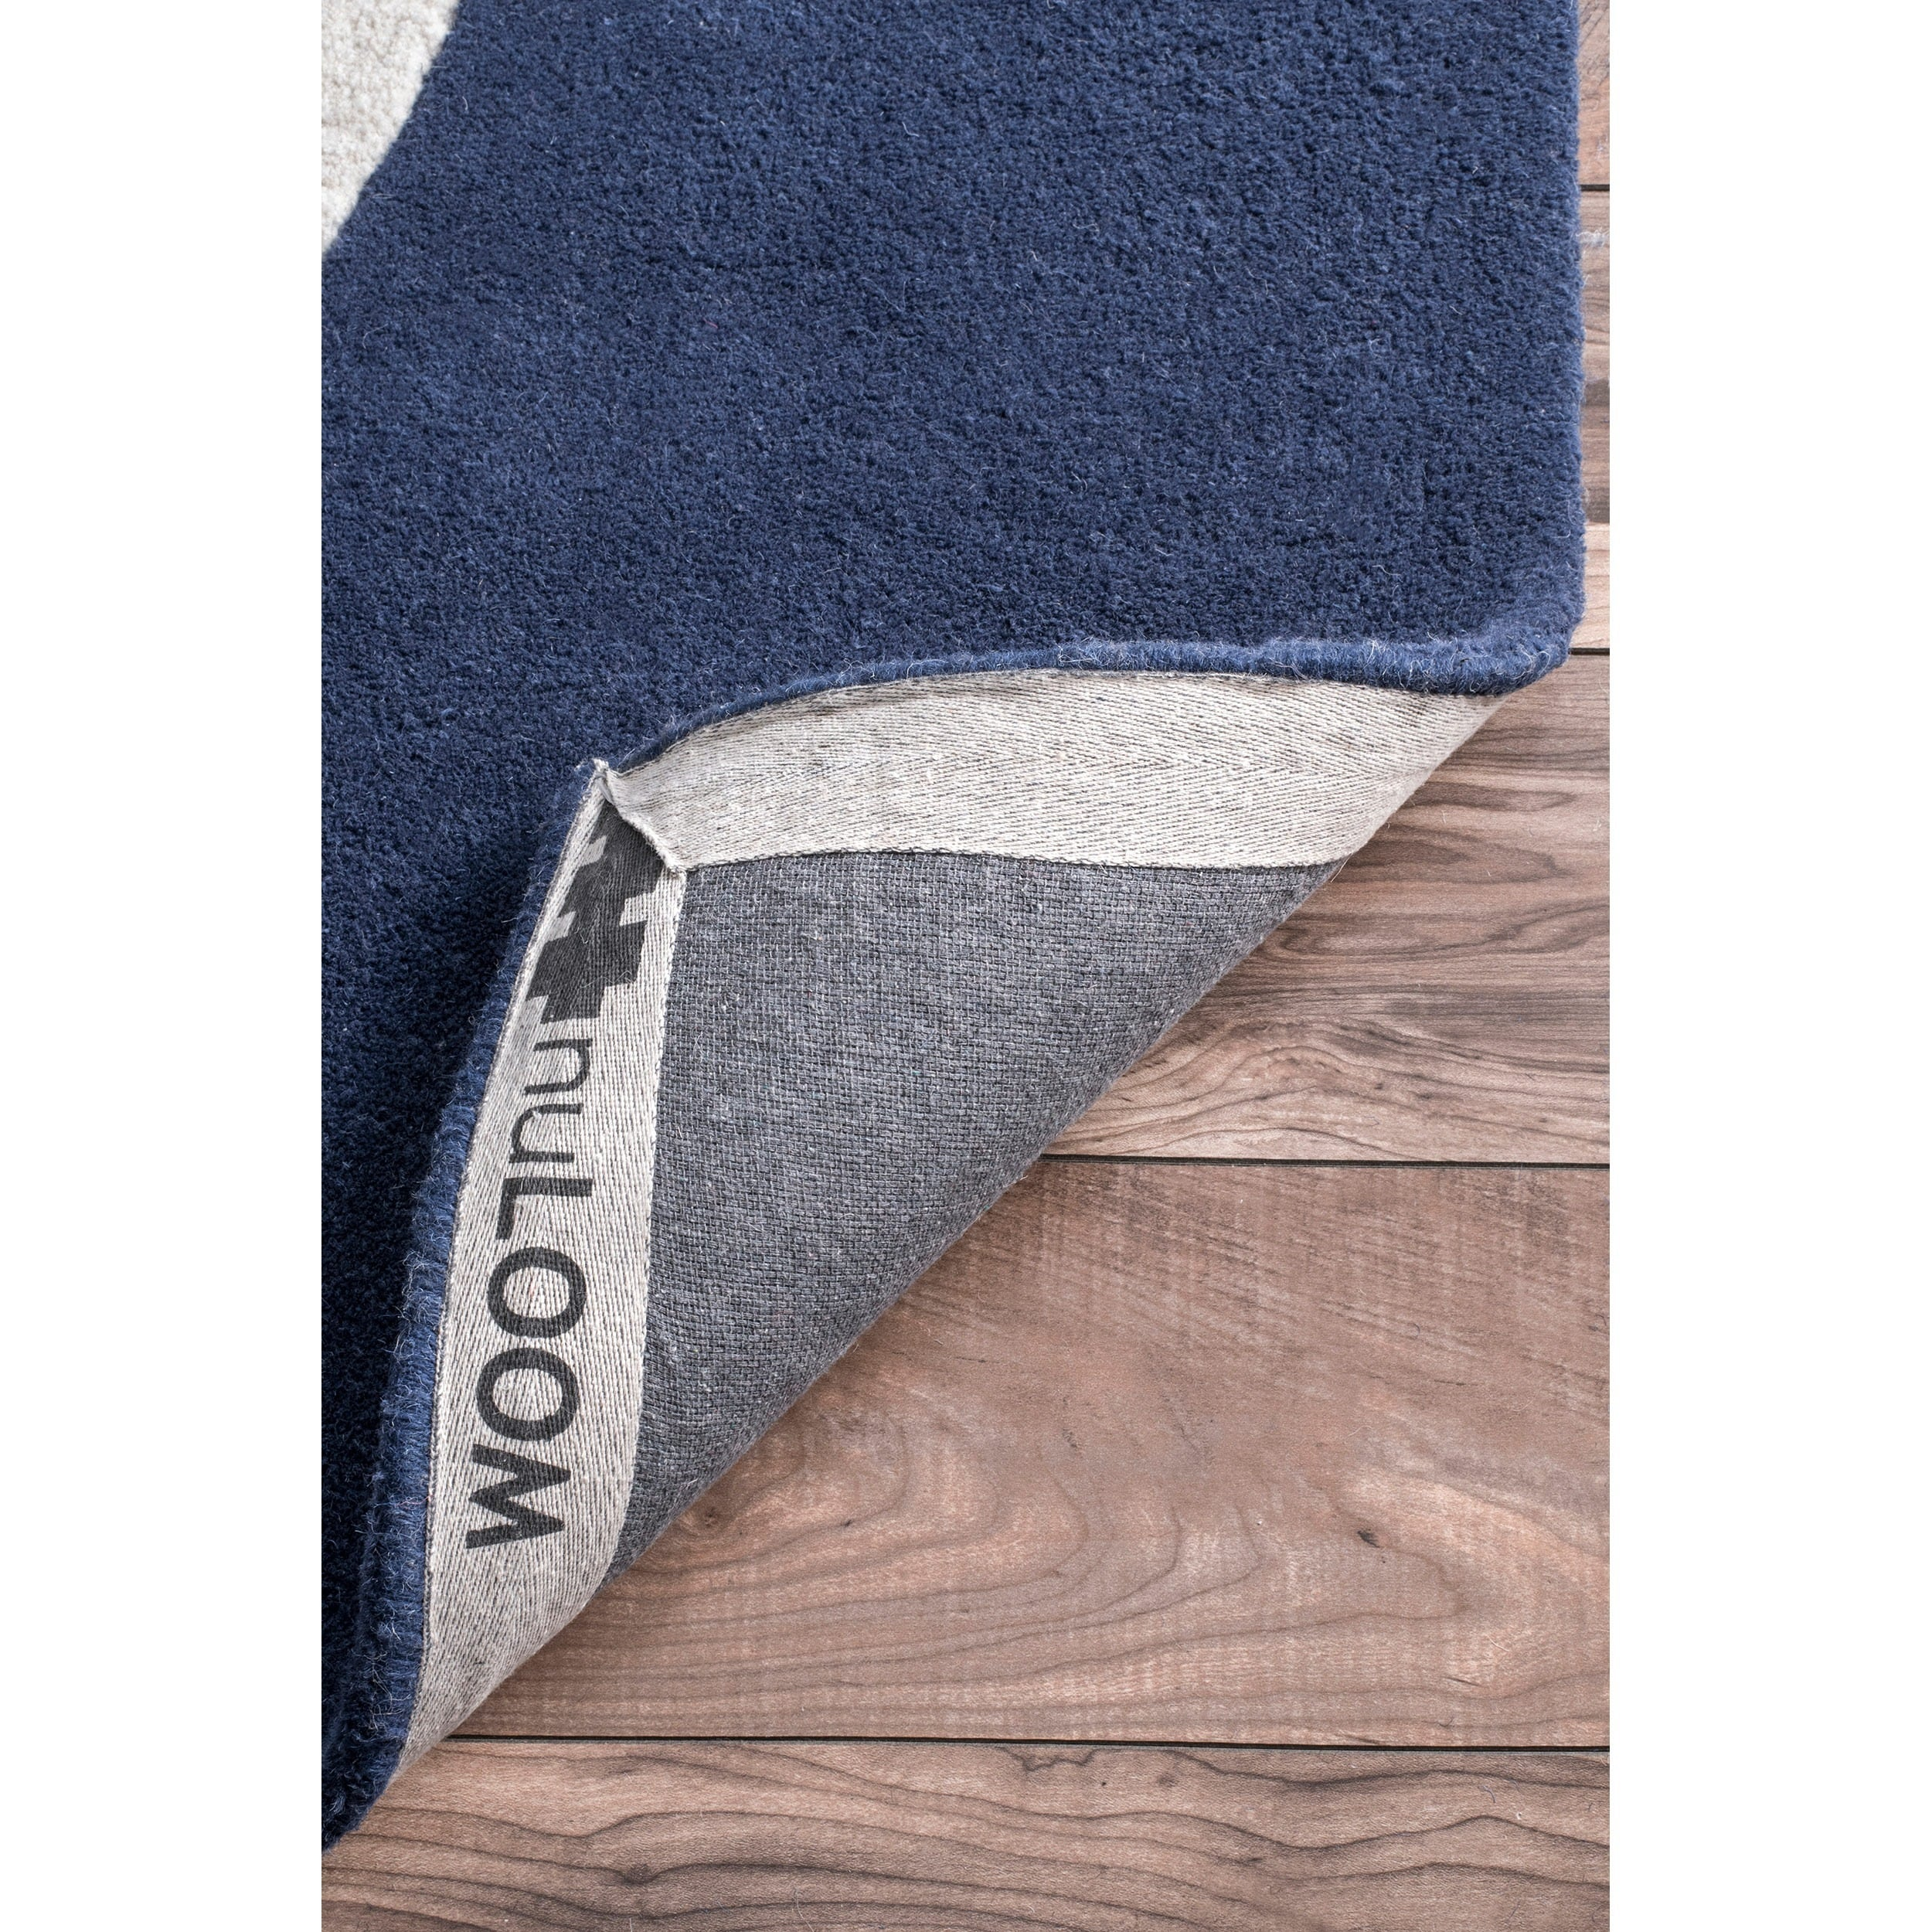 Nuloom Handmade Anchor Navy Wool Rug 5 X 8 Free Shipping Today Com 14629899